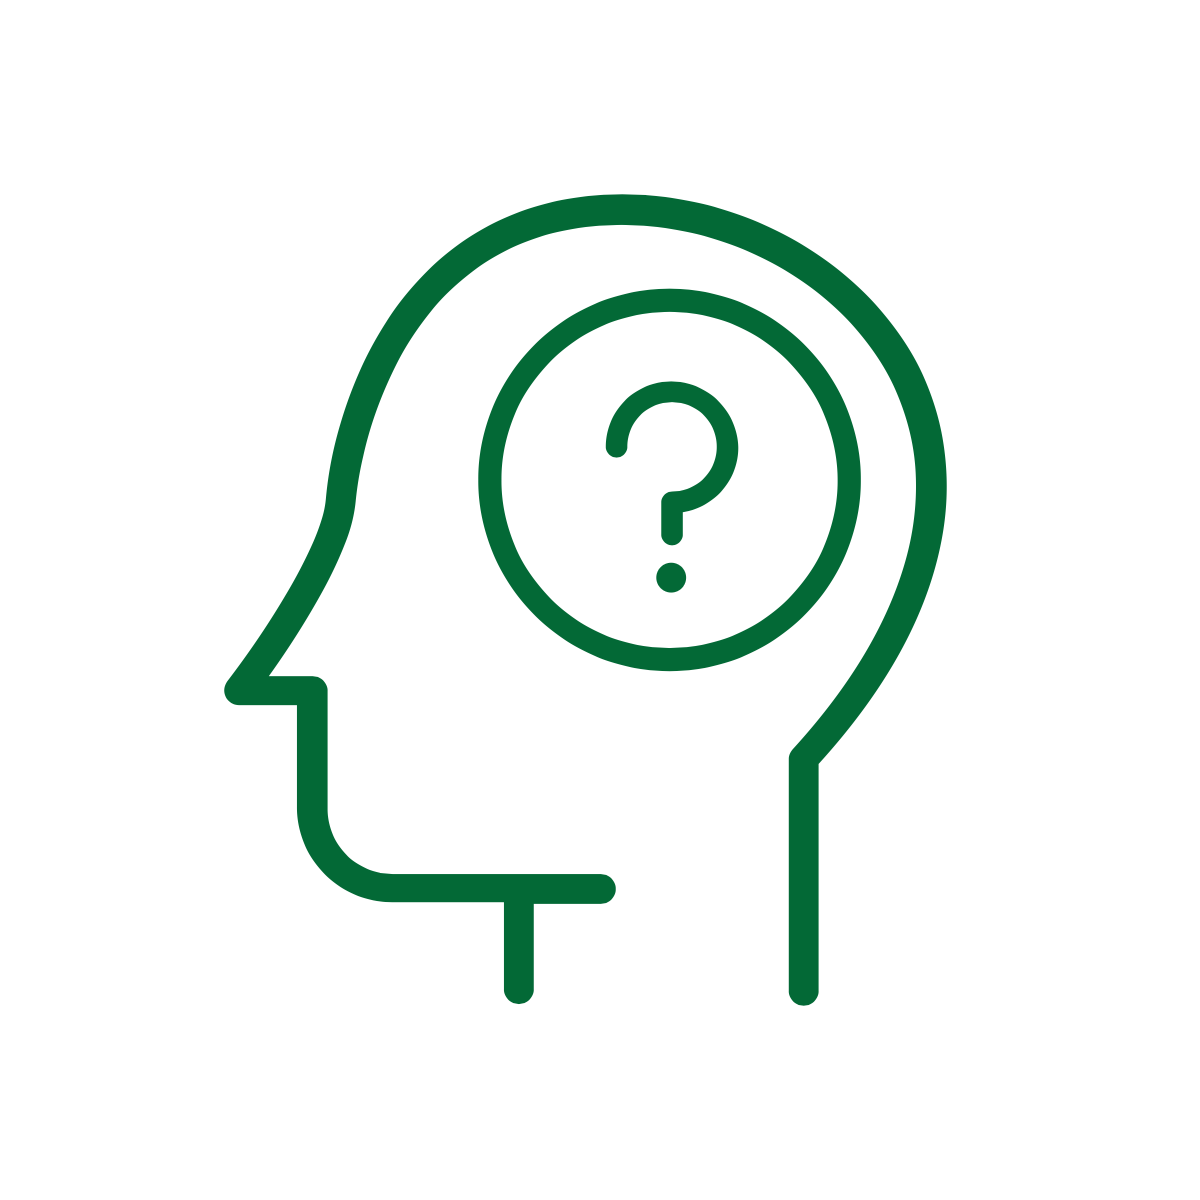 outline of a person's profile with a question mark placed inside where their brain would be